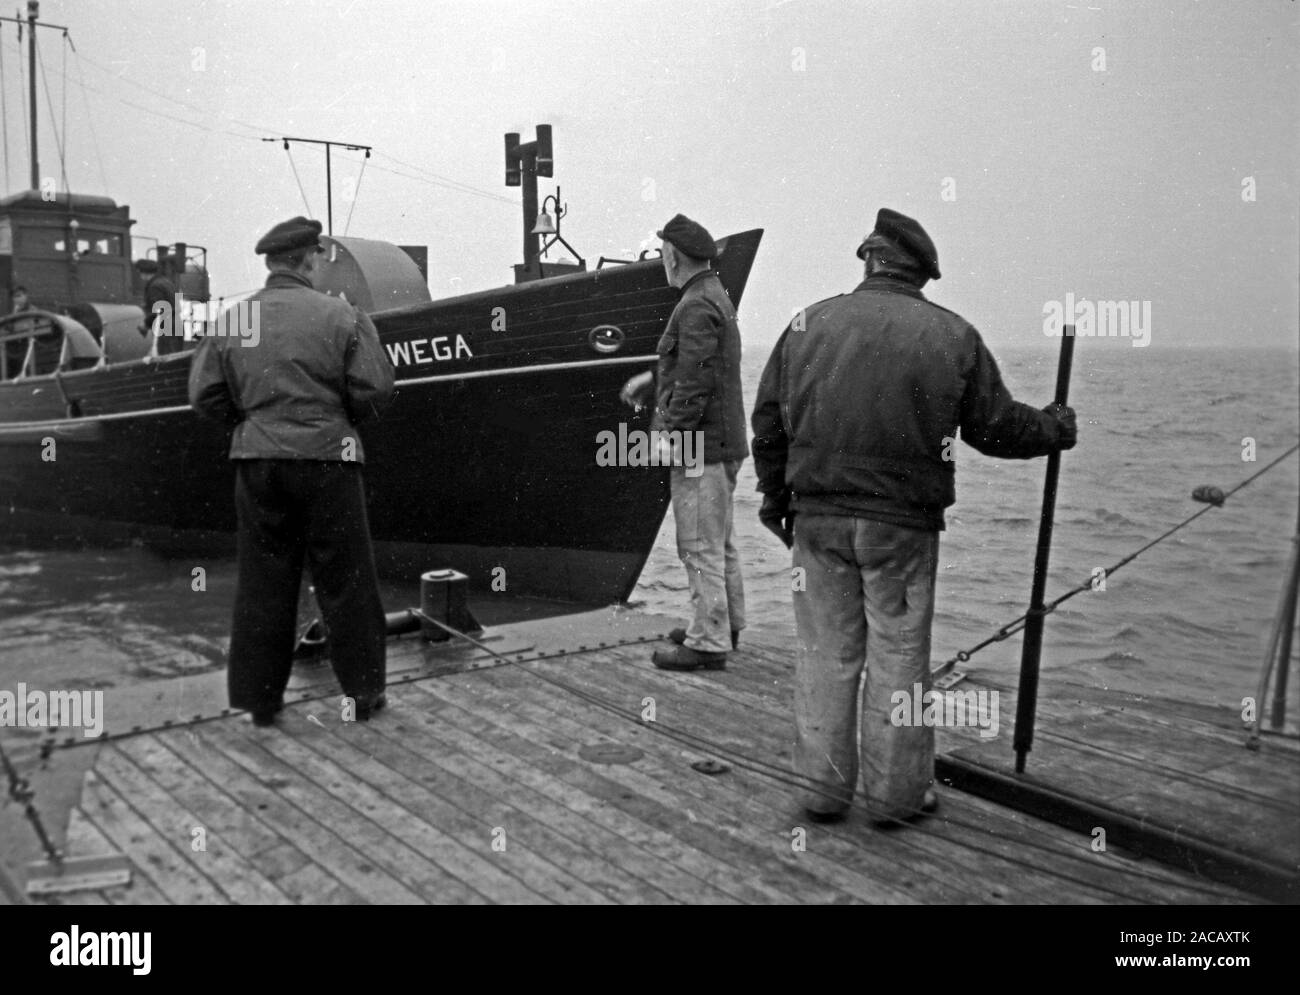 Schiffsarbeiter setzen Bojen, Emden, Niedersachsen, Deutschland, 1950. Ship workers put buoys, Emden, Lower Saxony, Germany, 1950. Stock Photo